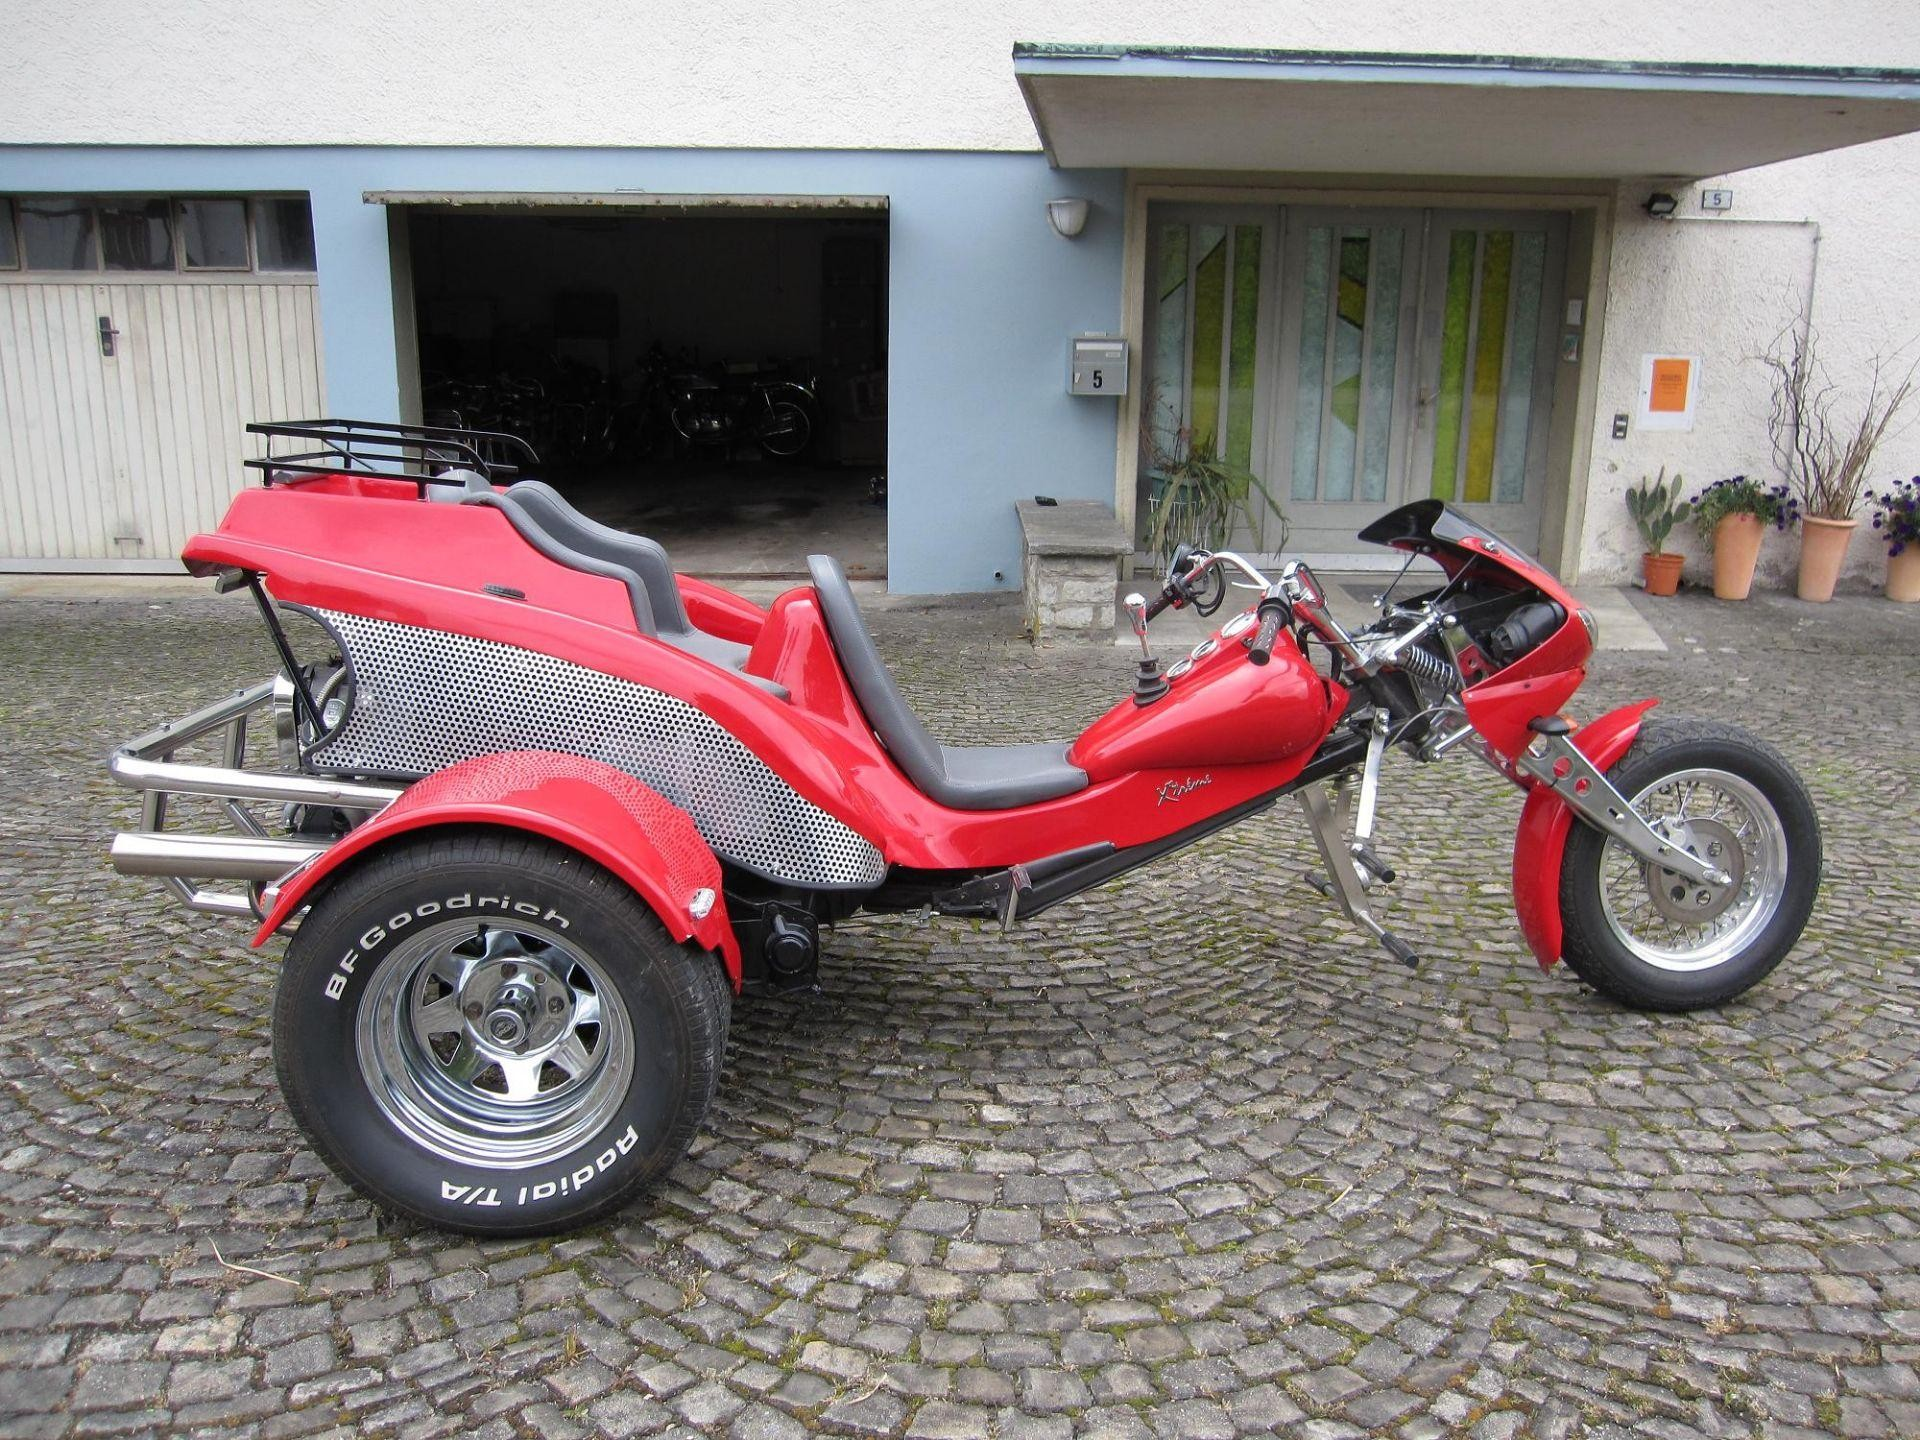 moto occasions acheter kbm streethawk 1600 trike t ff huus moosleerau moosleerau. Black Bedroom Furniture Sets. Home Design Ideas